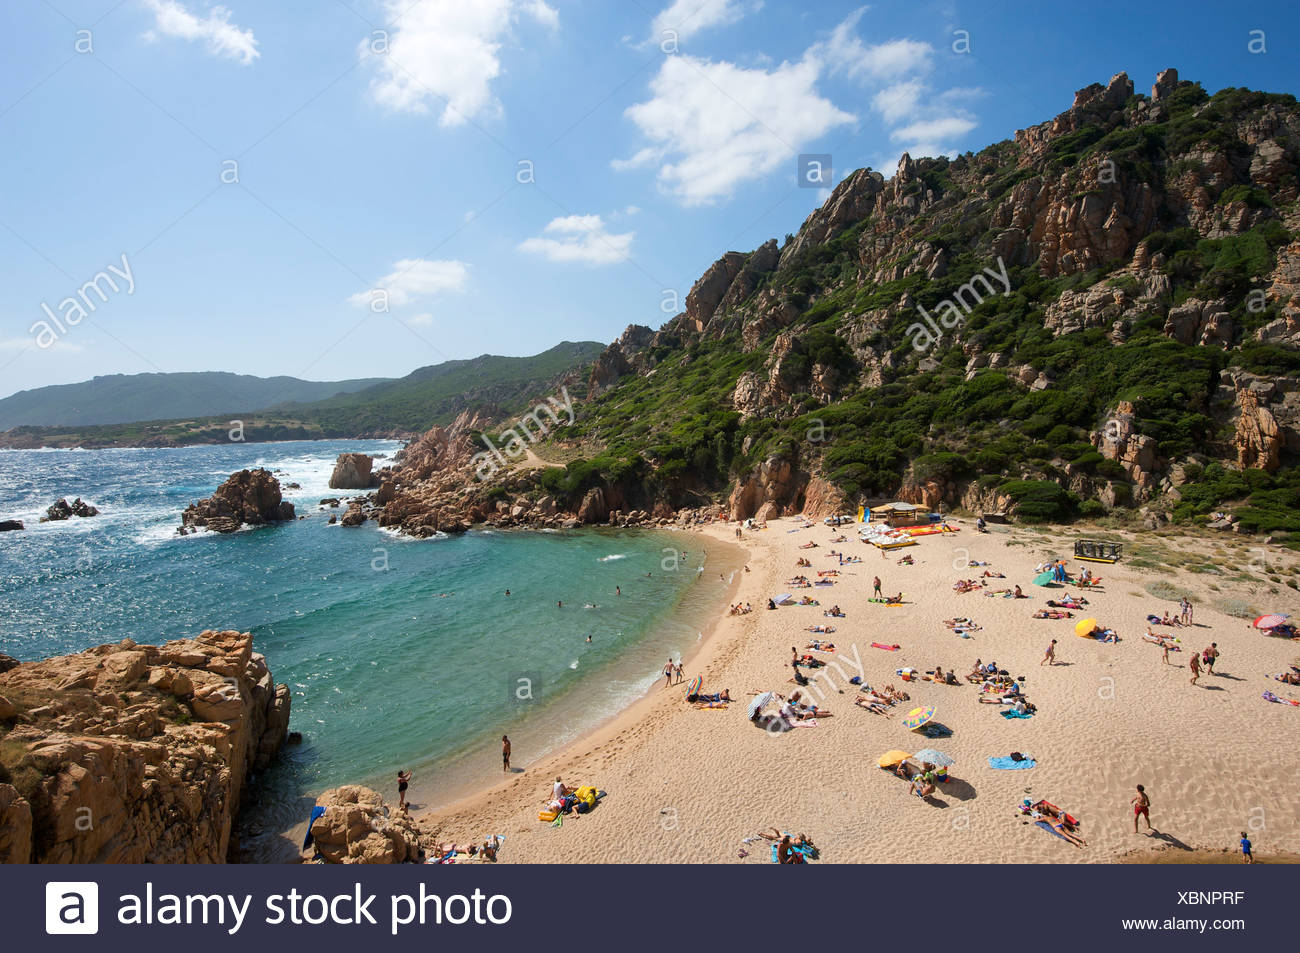 Li Cossi beach, Costa Paradiso, Sardinia, Italy, Europe Stock Photo